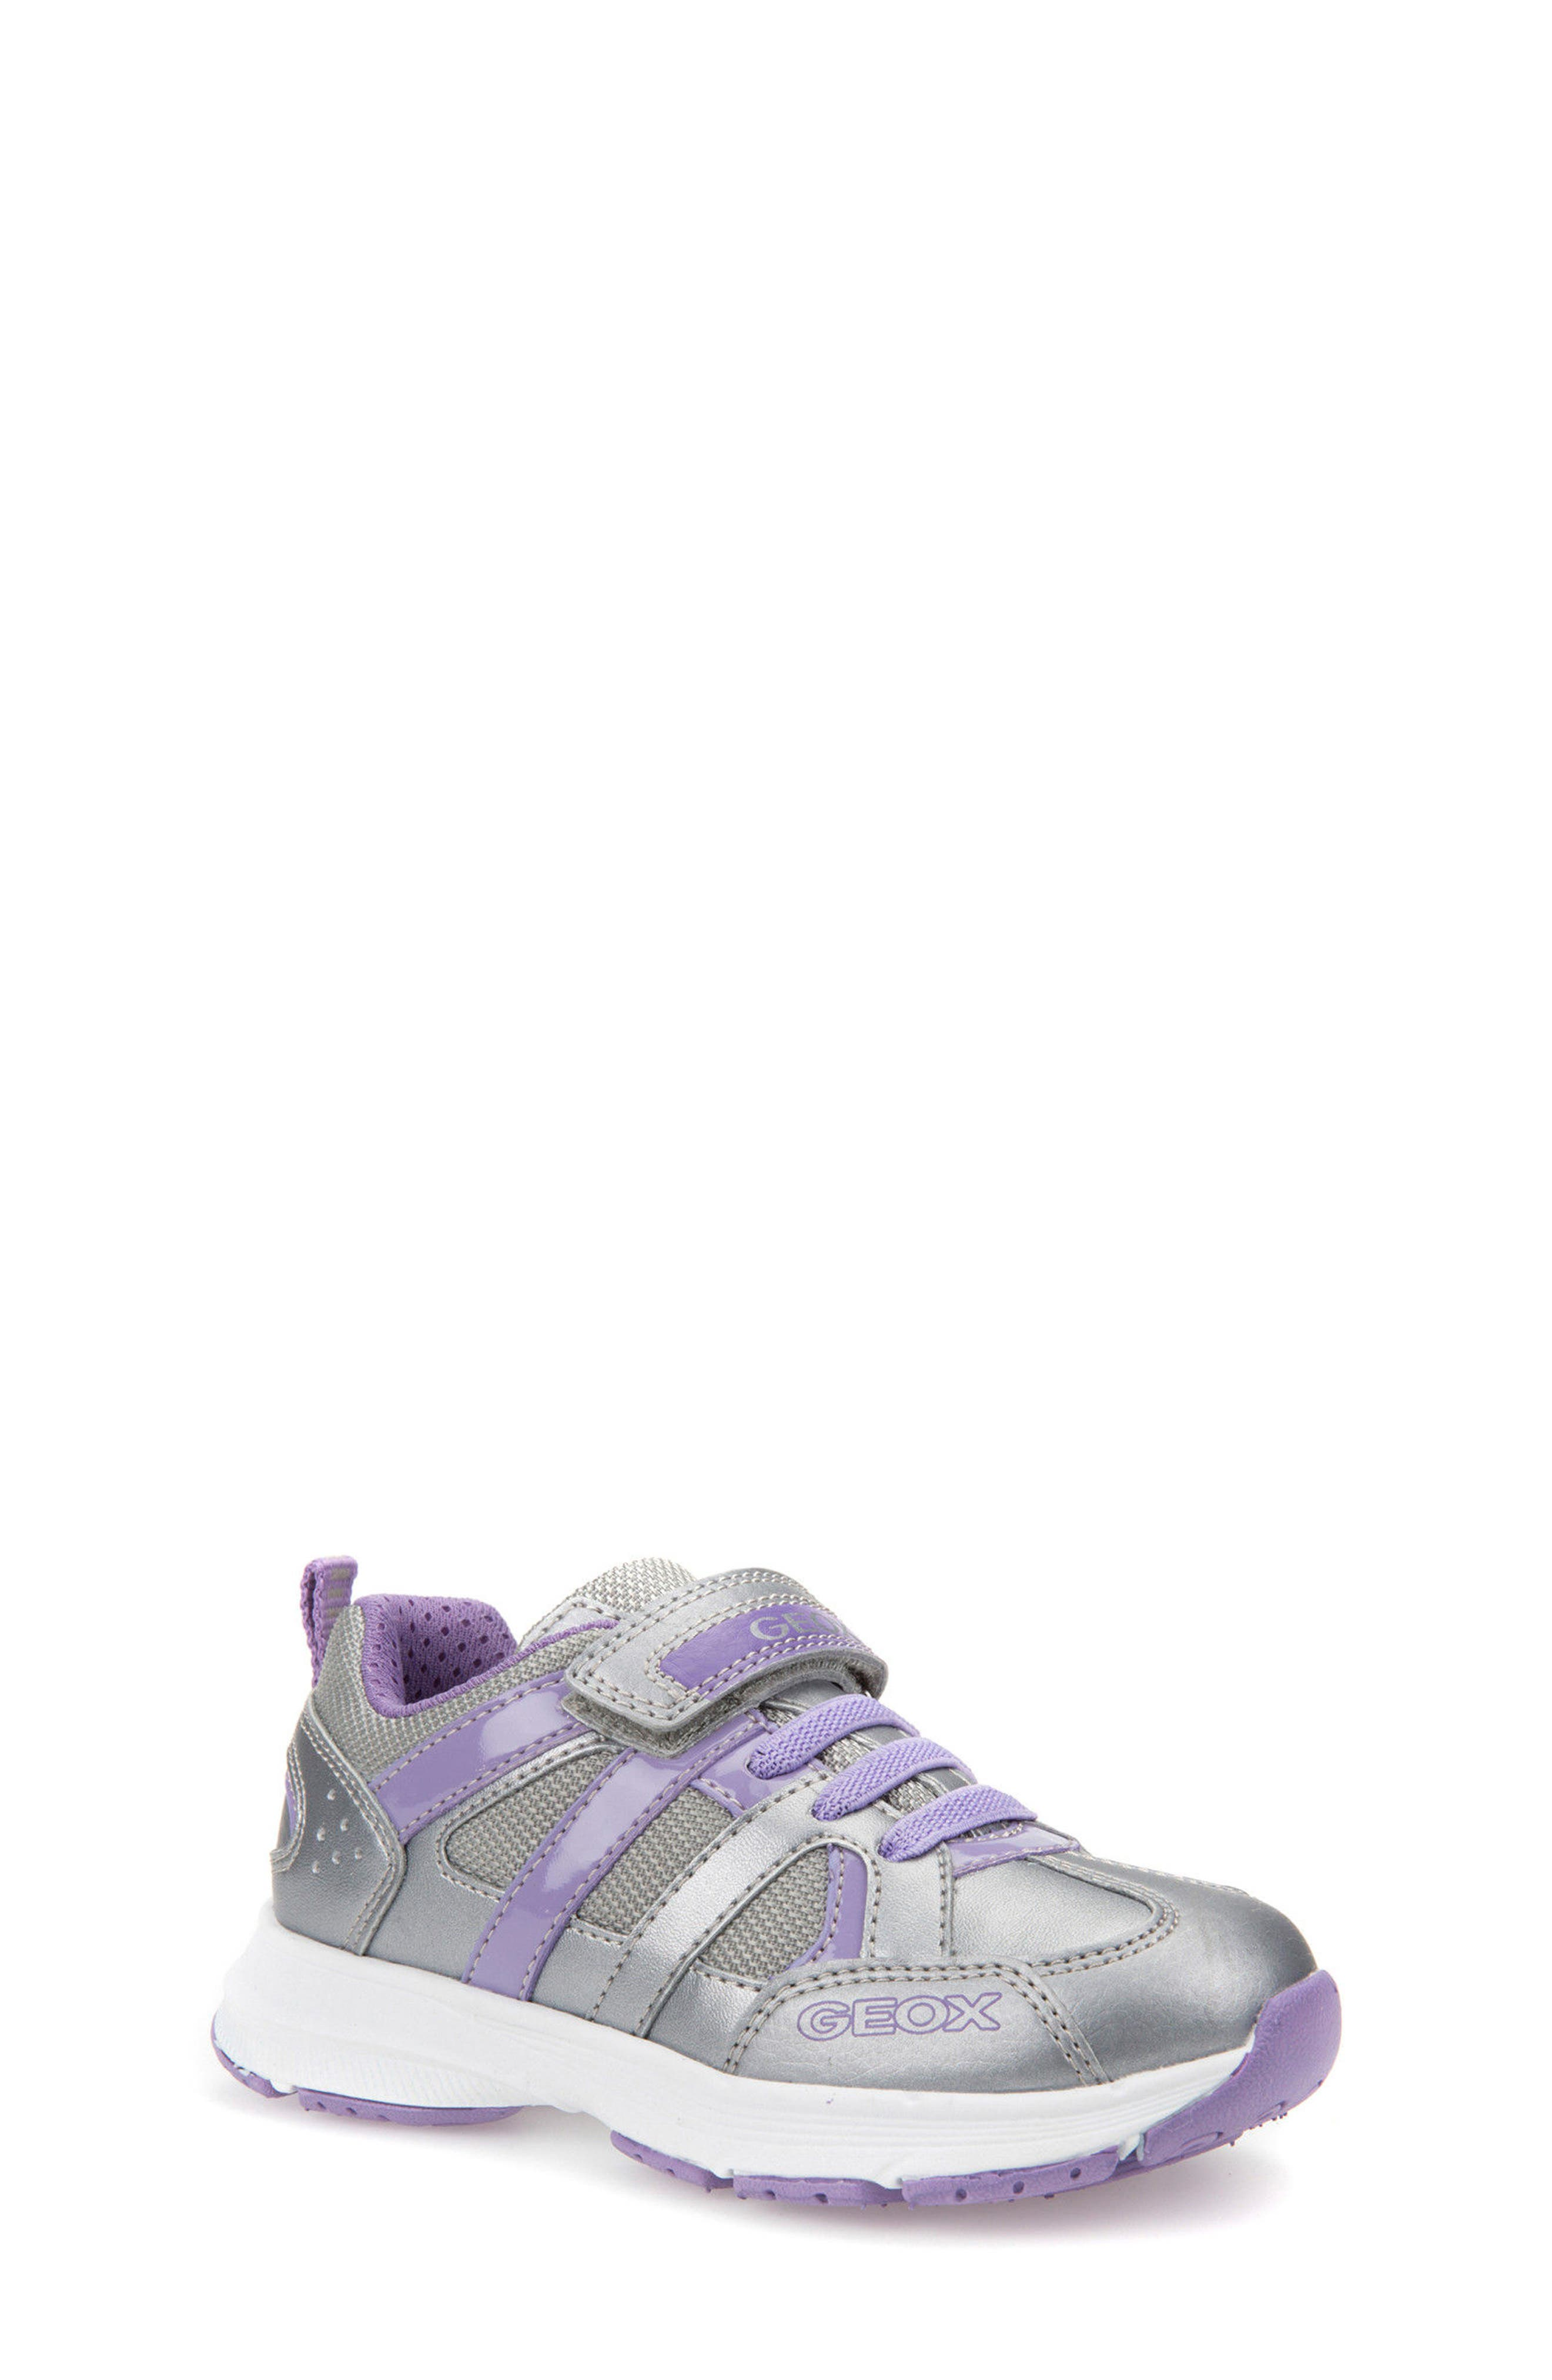 Top Fly Sneaker,                         Main,                         color,